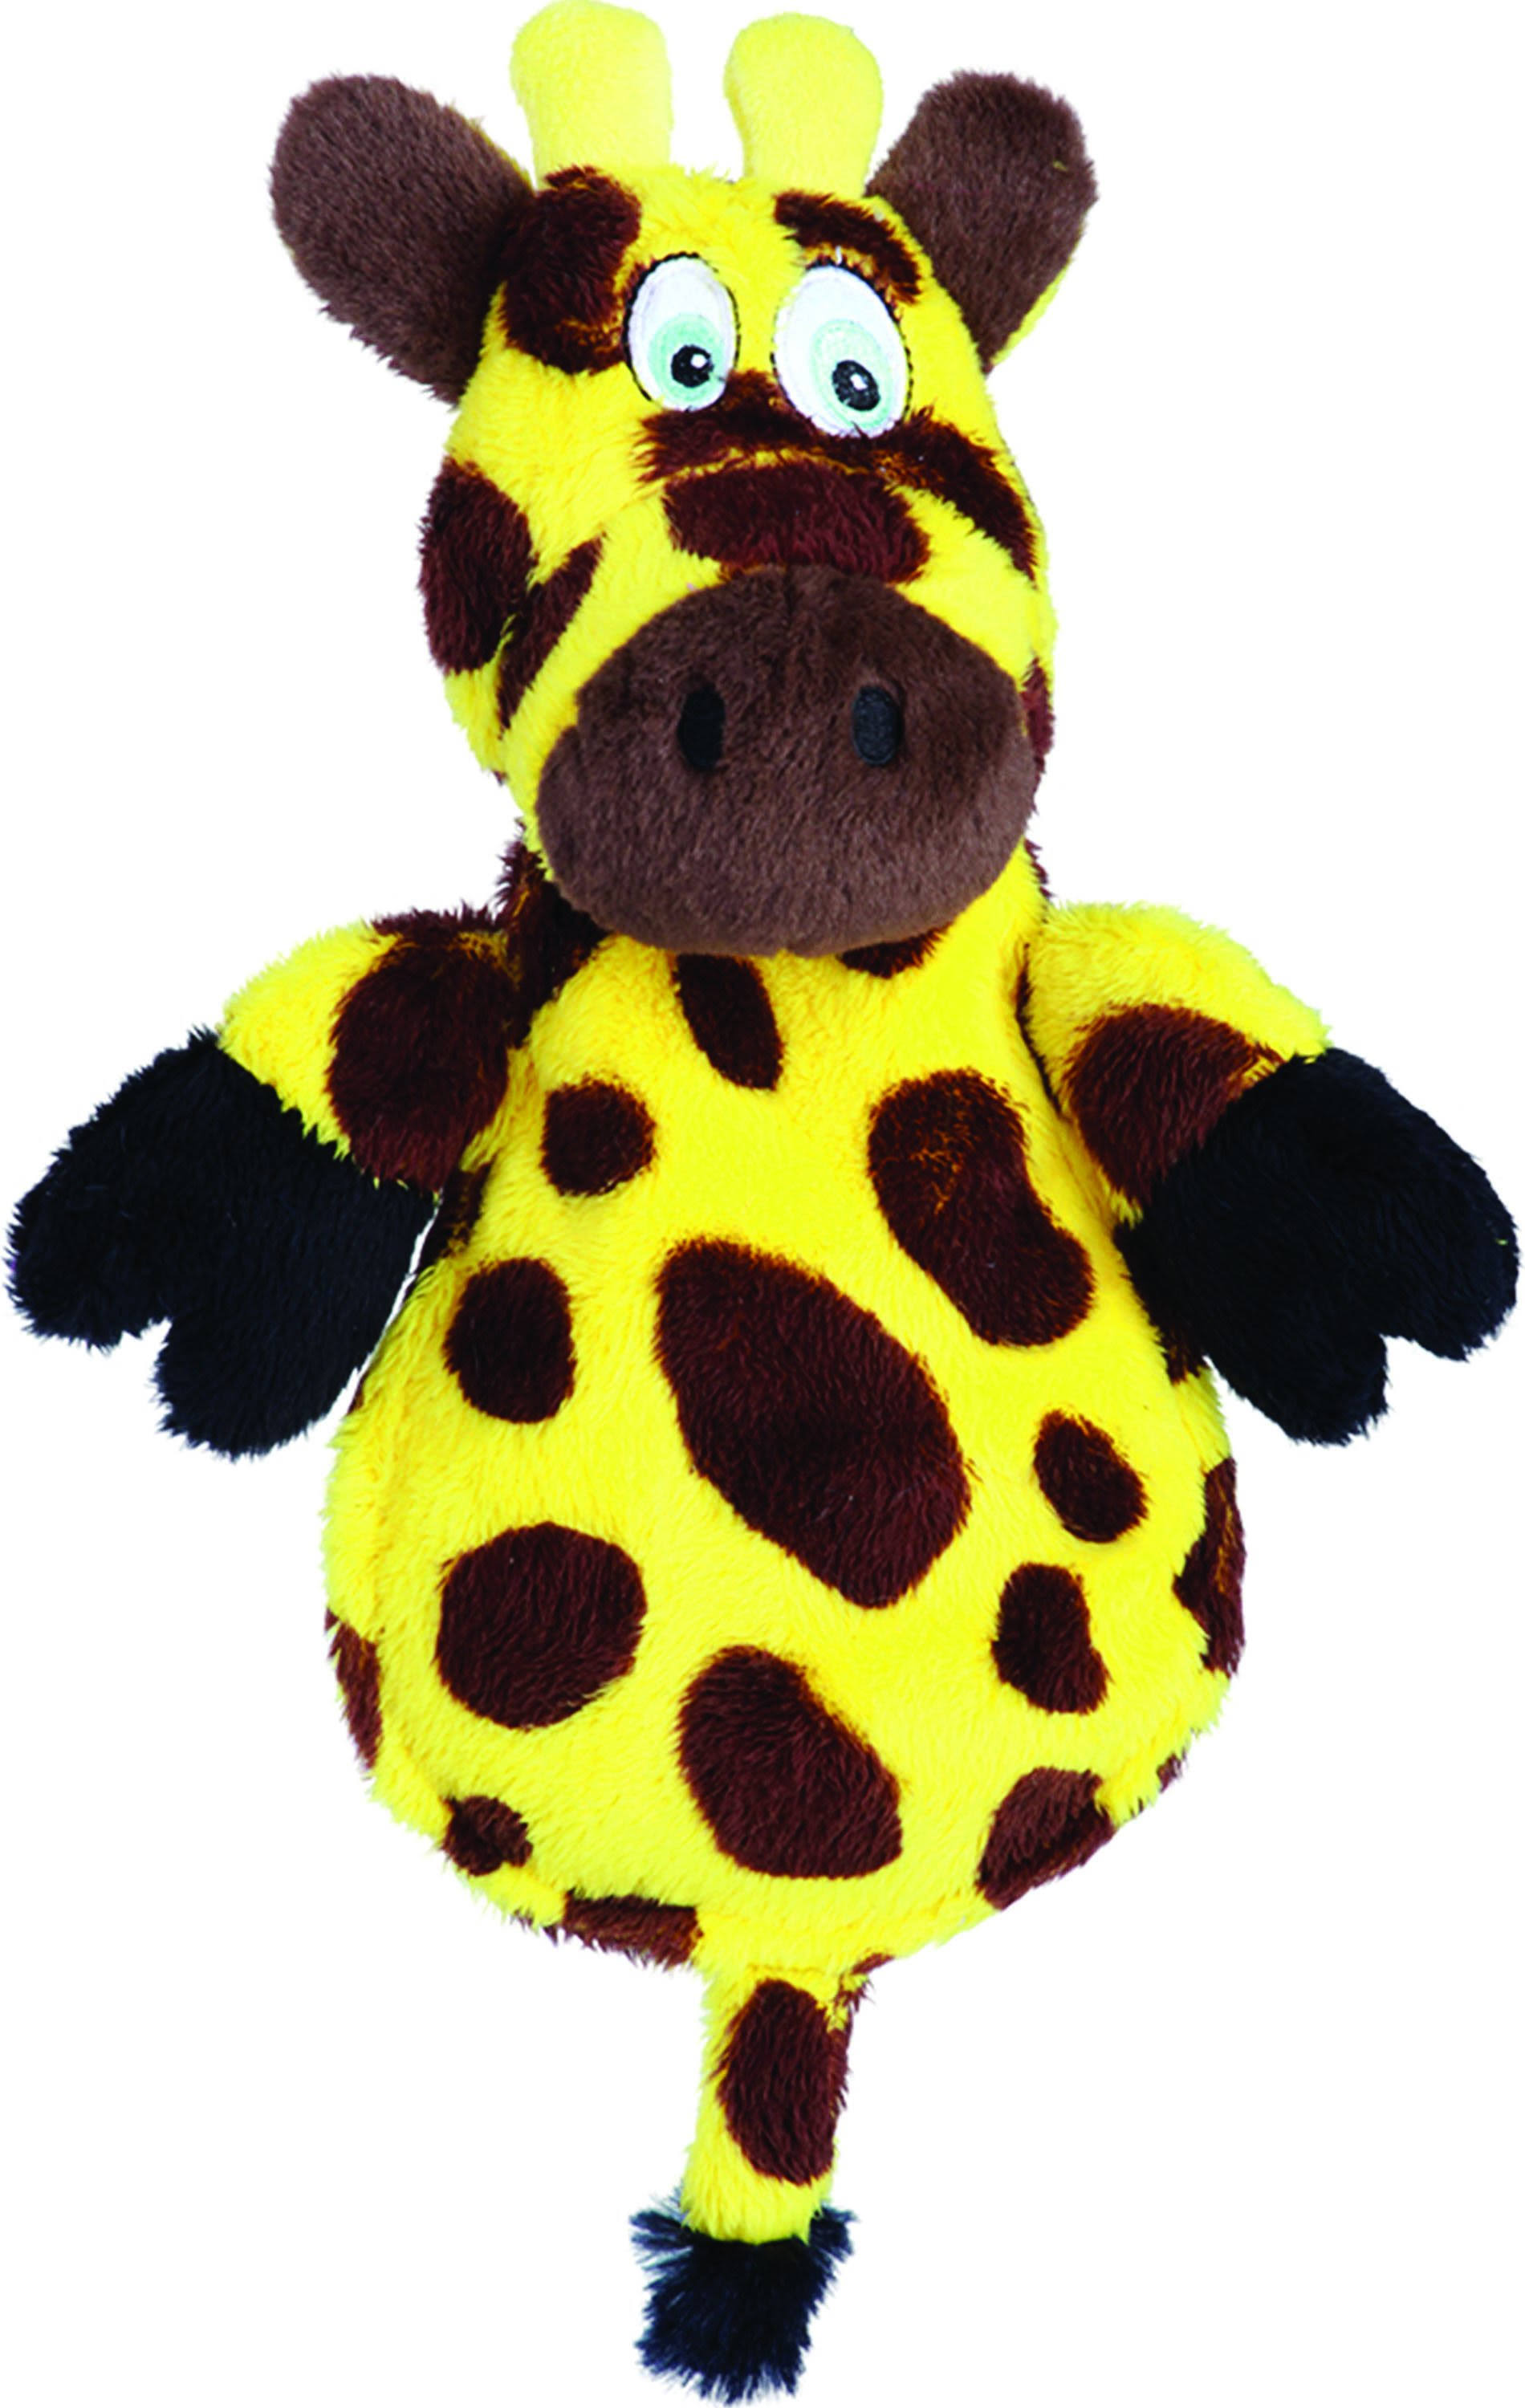 Hear Doggy Chew Guard Flats Dog Toy - Giraffe, Yellow and Brown, Ultrasonic Silent Squeaker